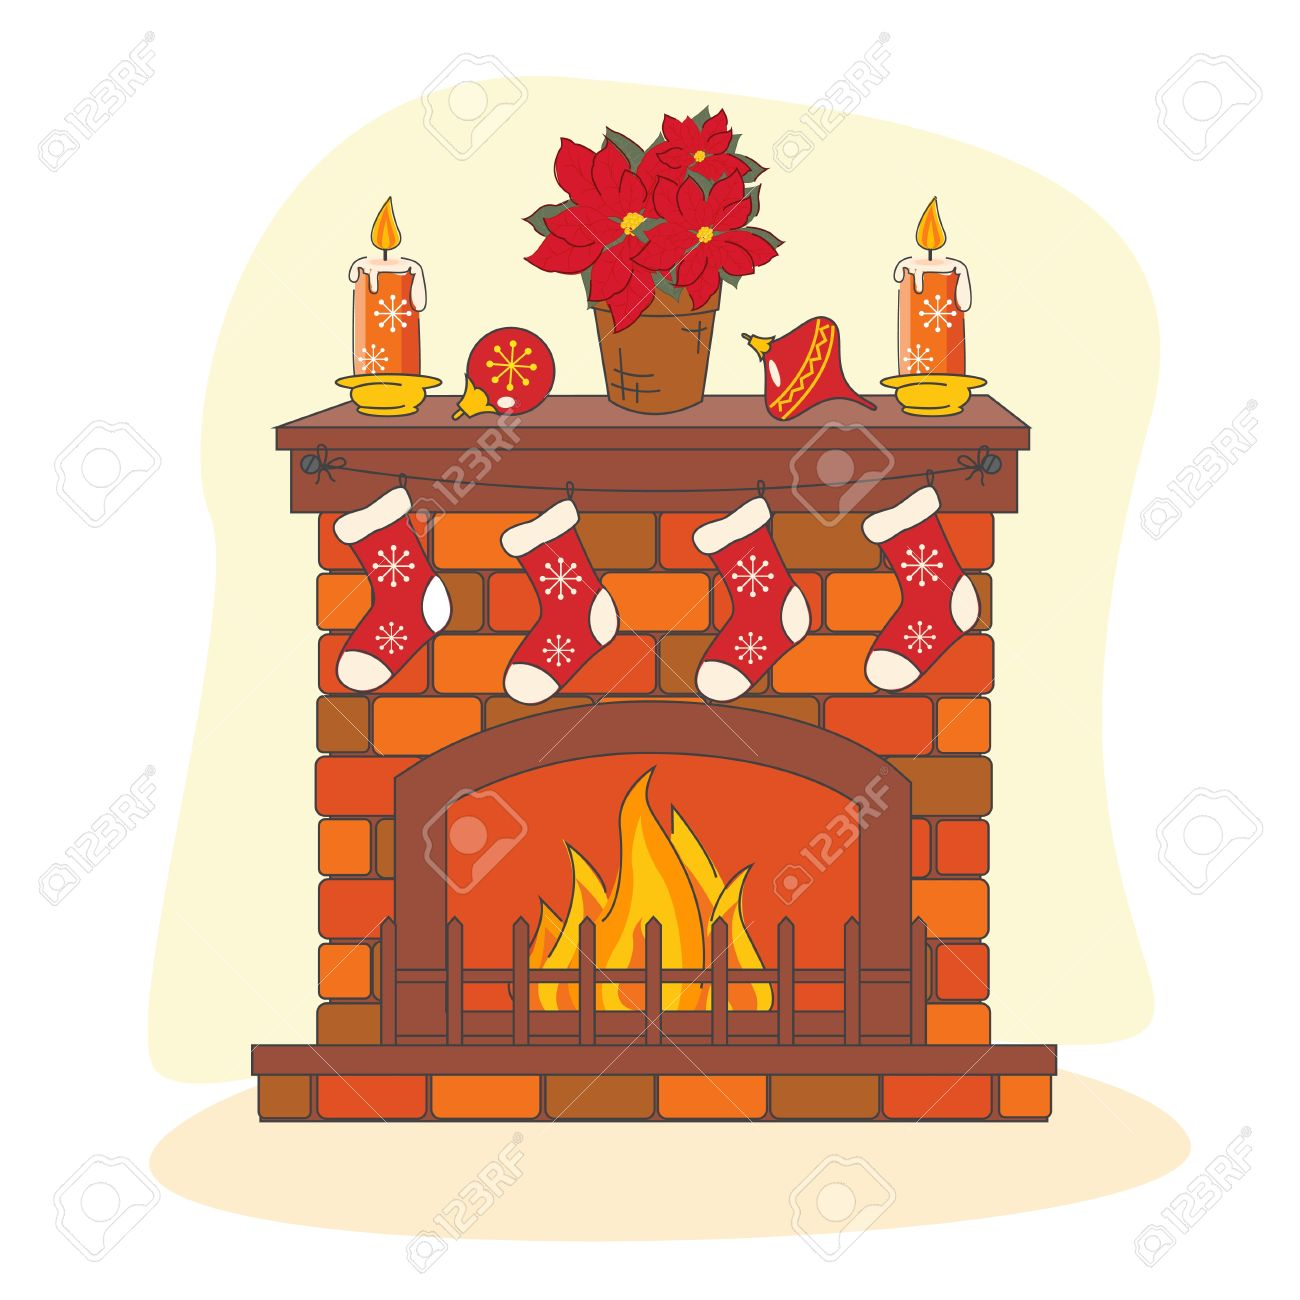 Christmas decoration fireplace. Hand drawing illustration.